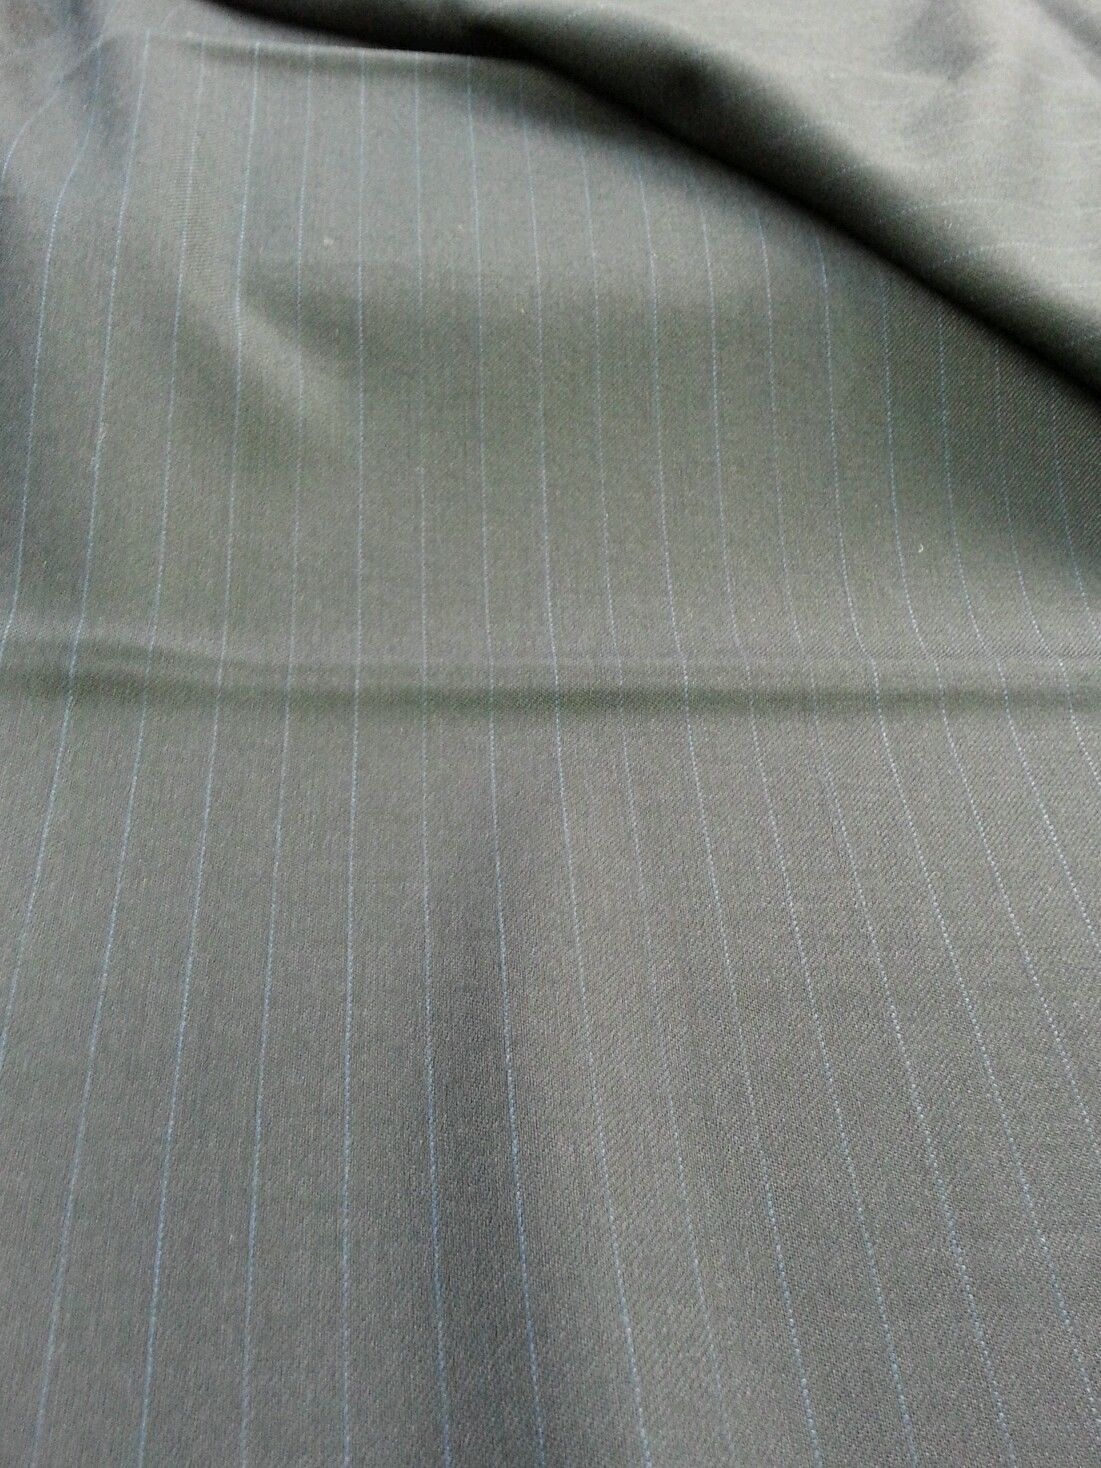 9 YRD NAVY BLUE SUPER 120'S ENGLISH WOOL Pin Stripe Suit Skirt  Sewing Fabric